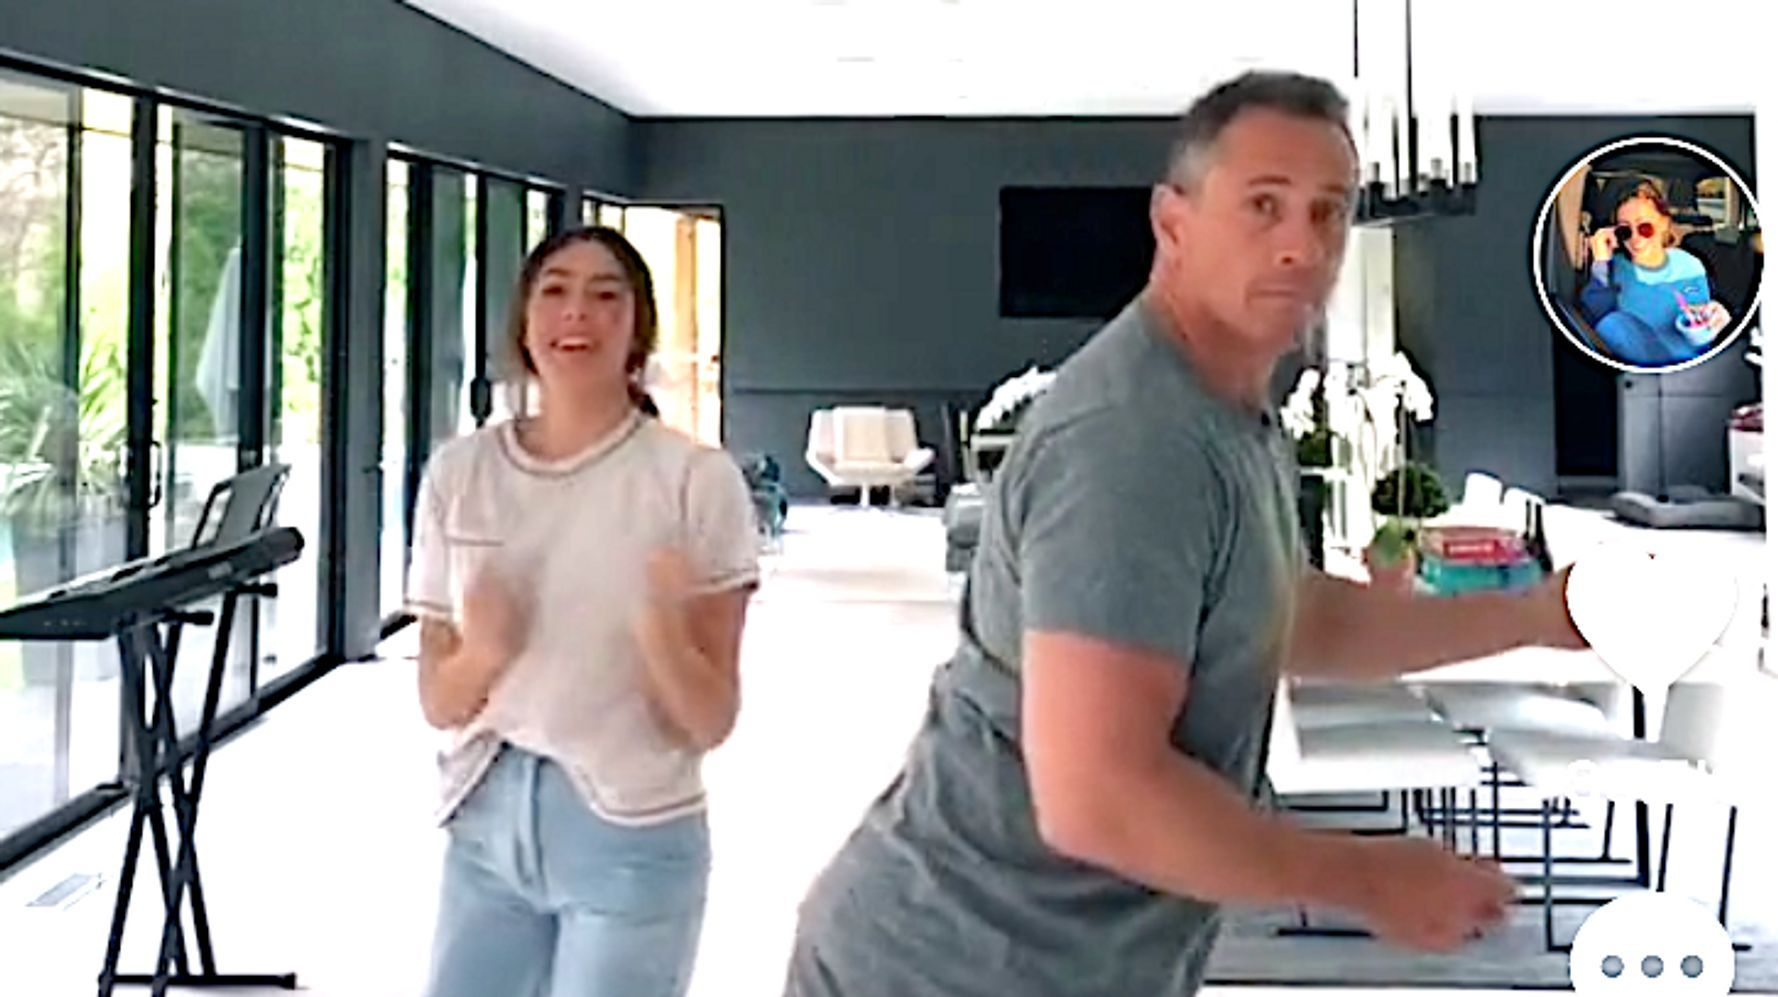 Blog Chris Cuomo Busts Some Dad Moves In Tiktok Dance Video With Daughter Huffpost In 2020 Chris Cuomo Dance Videos Chris